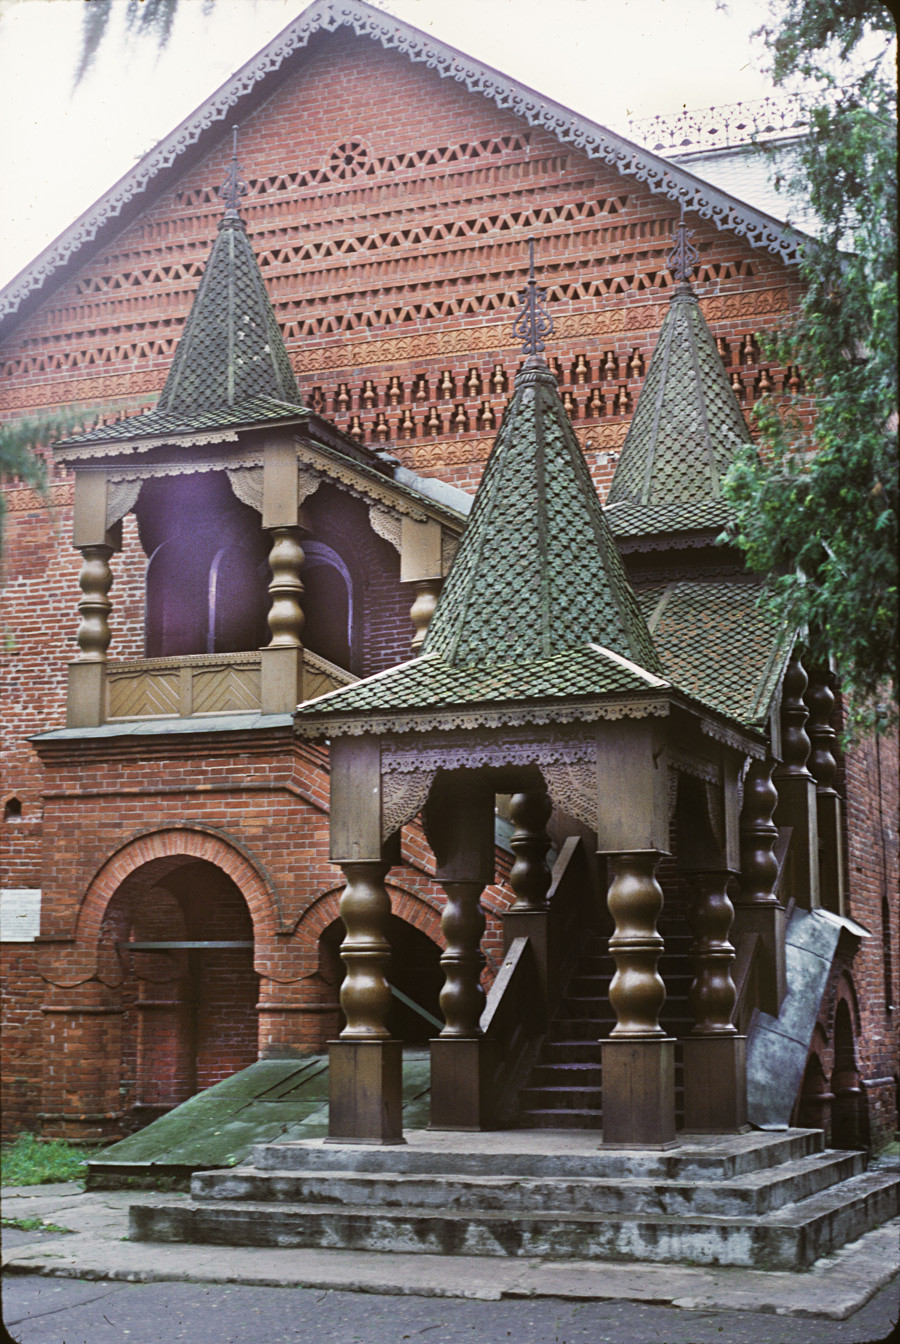 Palace (Chambers) of Uglich Princes. North view with stairway created by N. Sultanov. August 9, 1987.